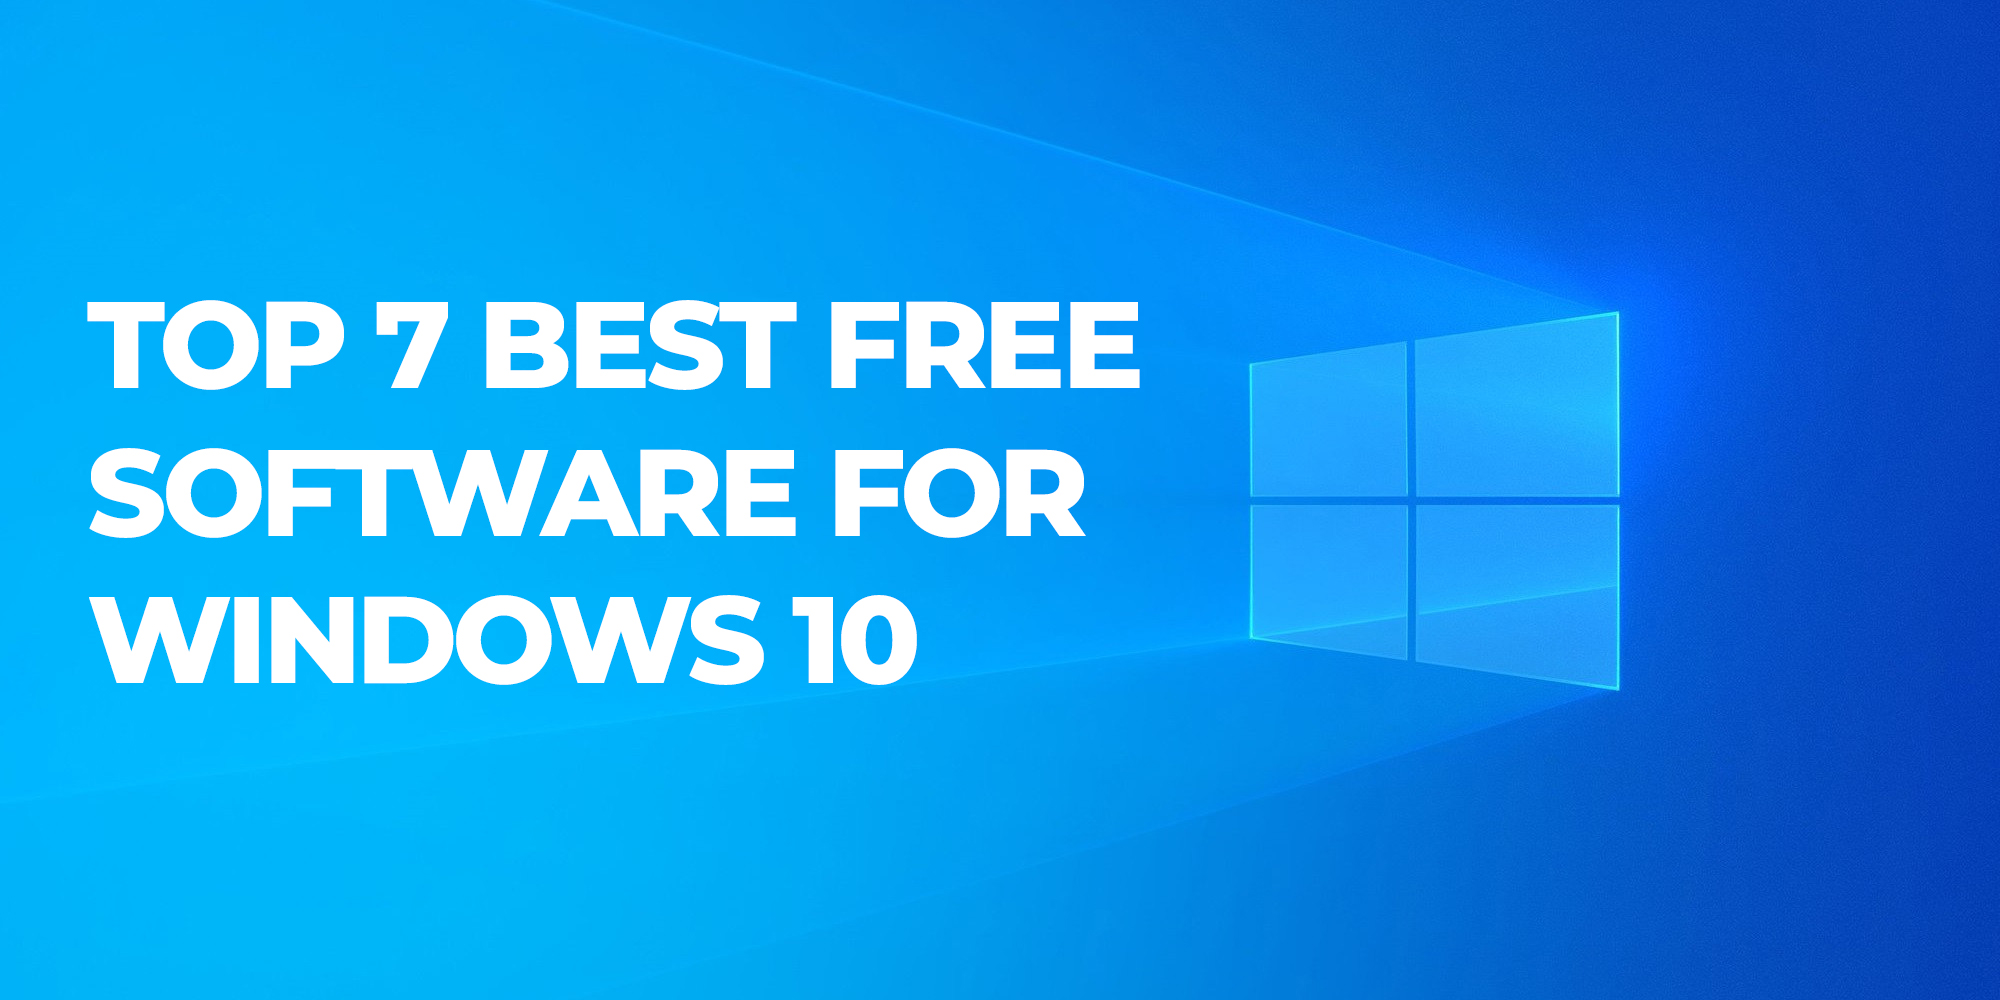 Top 7 best free software for windows 10